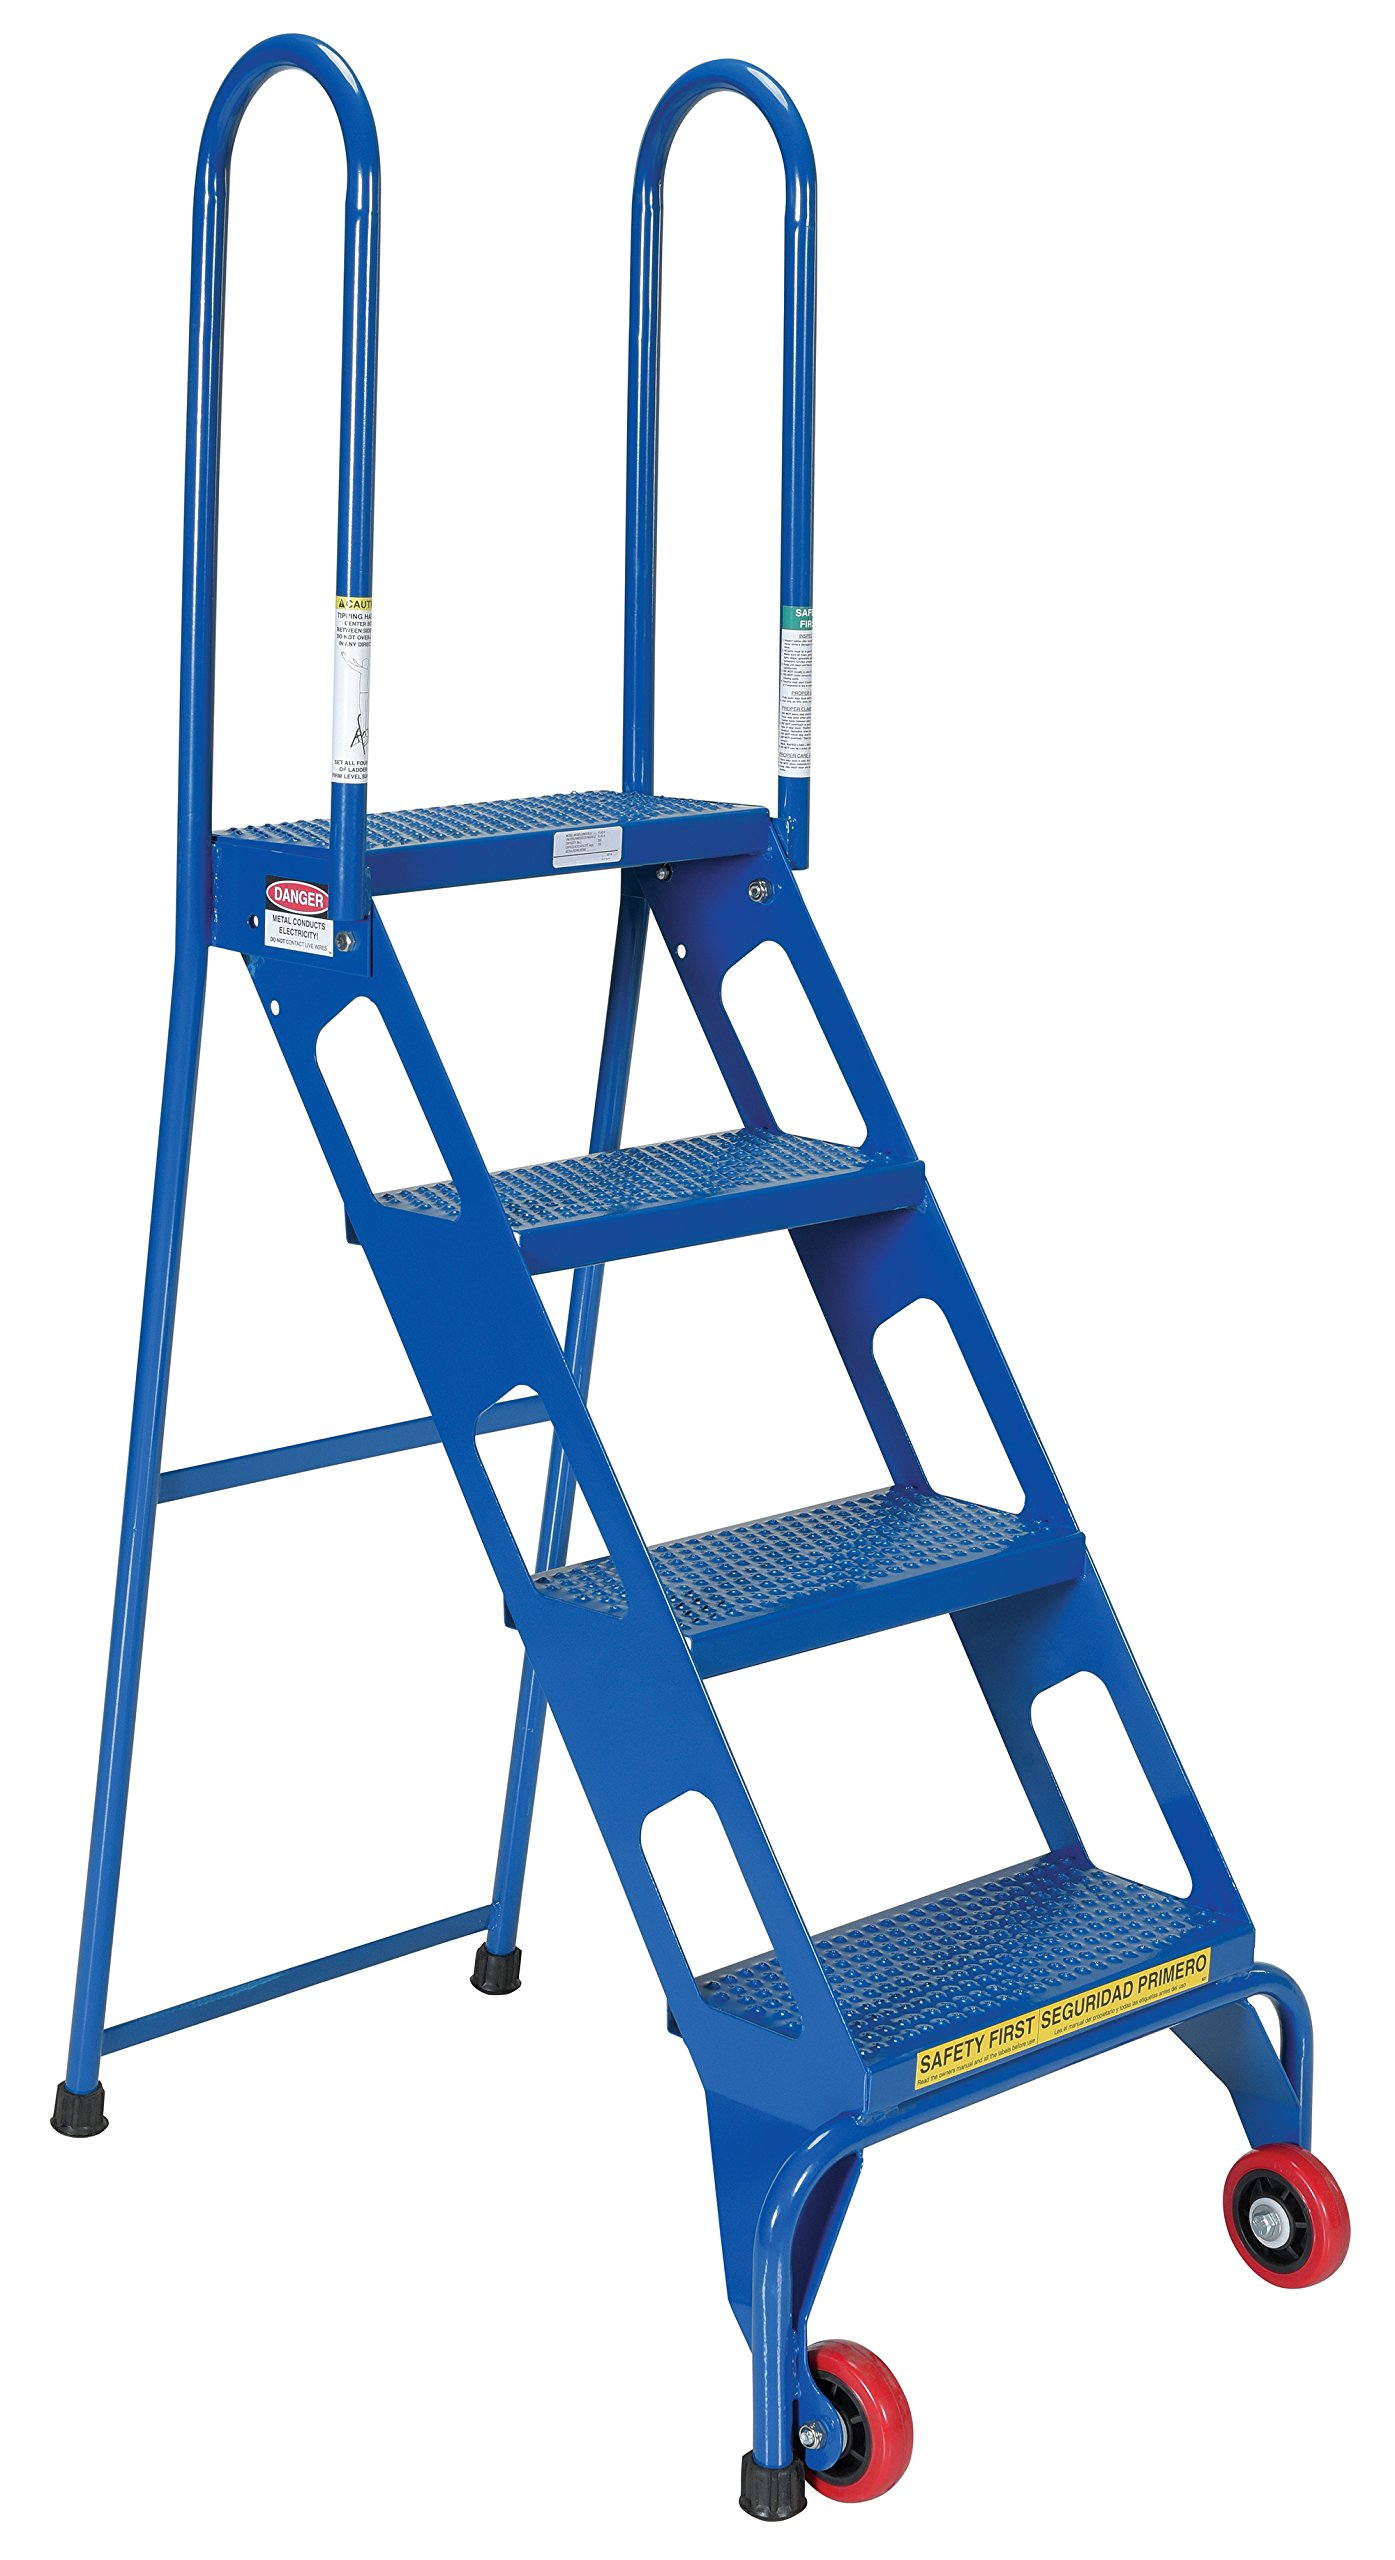 Vestil FLAD-4 Folding 4 Steps Ladder with Wheels, Carbon Steel, 350 lbs Capacity, 39-7/8'' Top Step Height